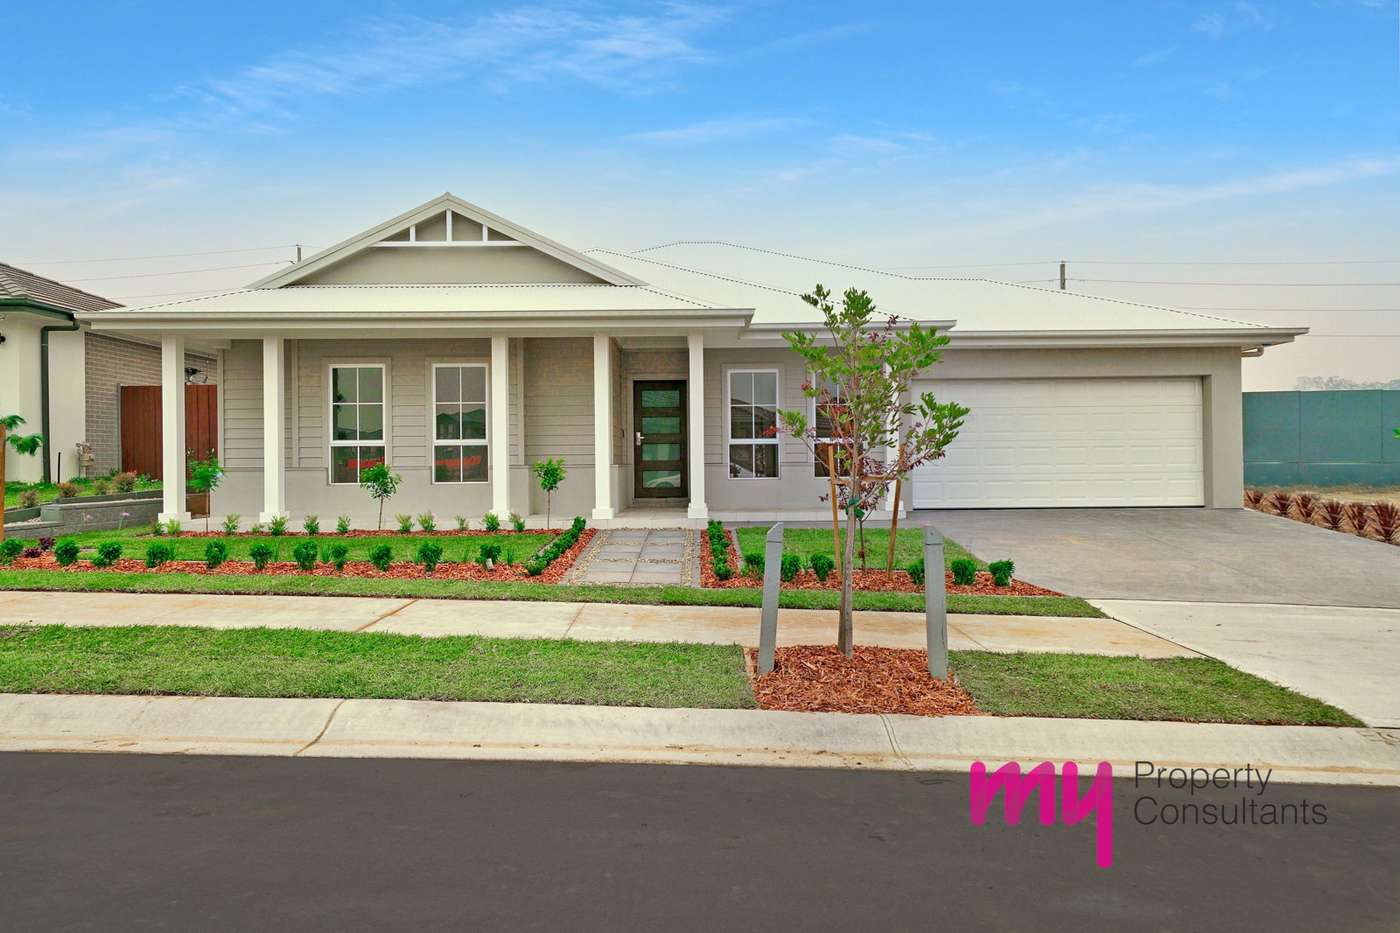 Main view of Homely house listing, 61 Evergreen Drive, Oran Park, NSW 2570